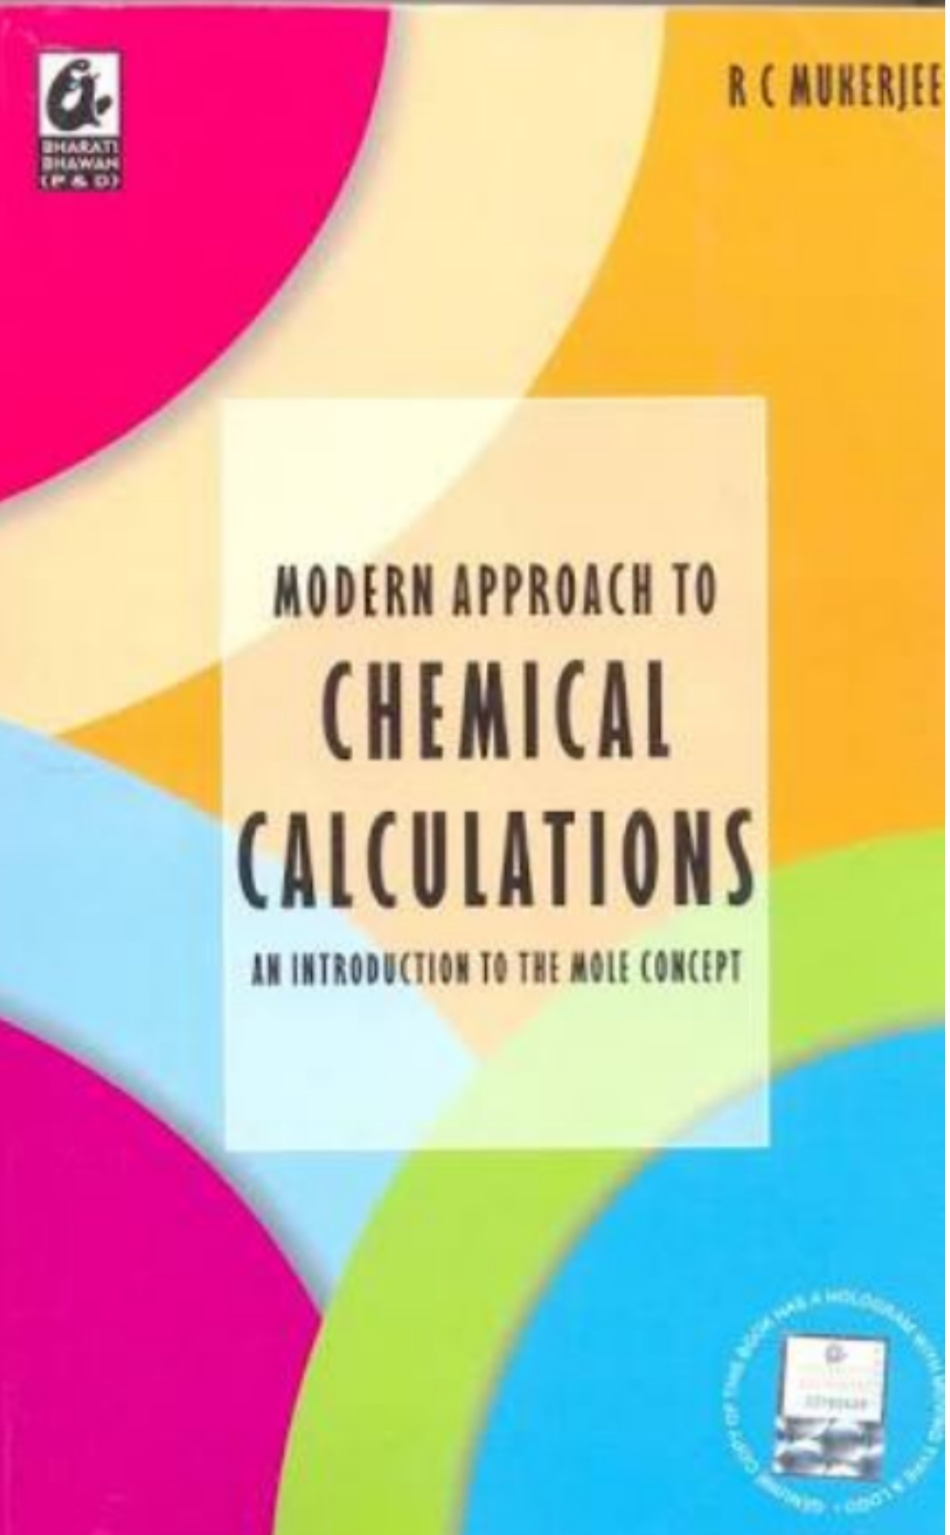 RC MUKHARJEE MODERN APPROACH TO CHEMICAL CALCULATION